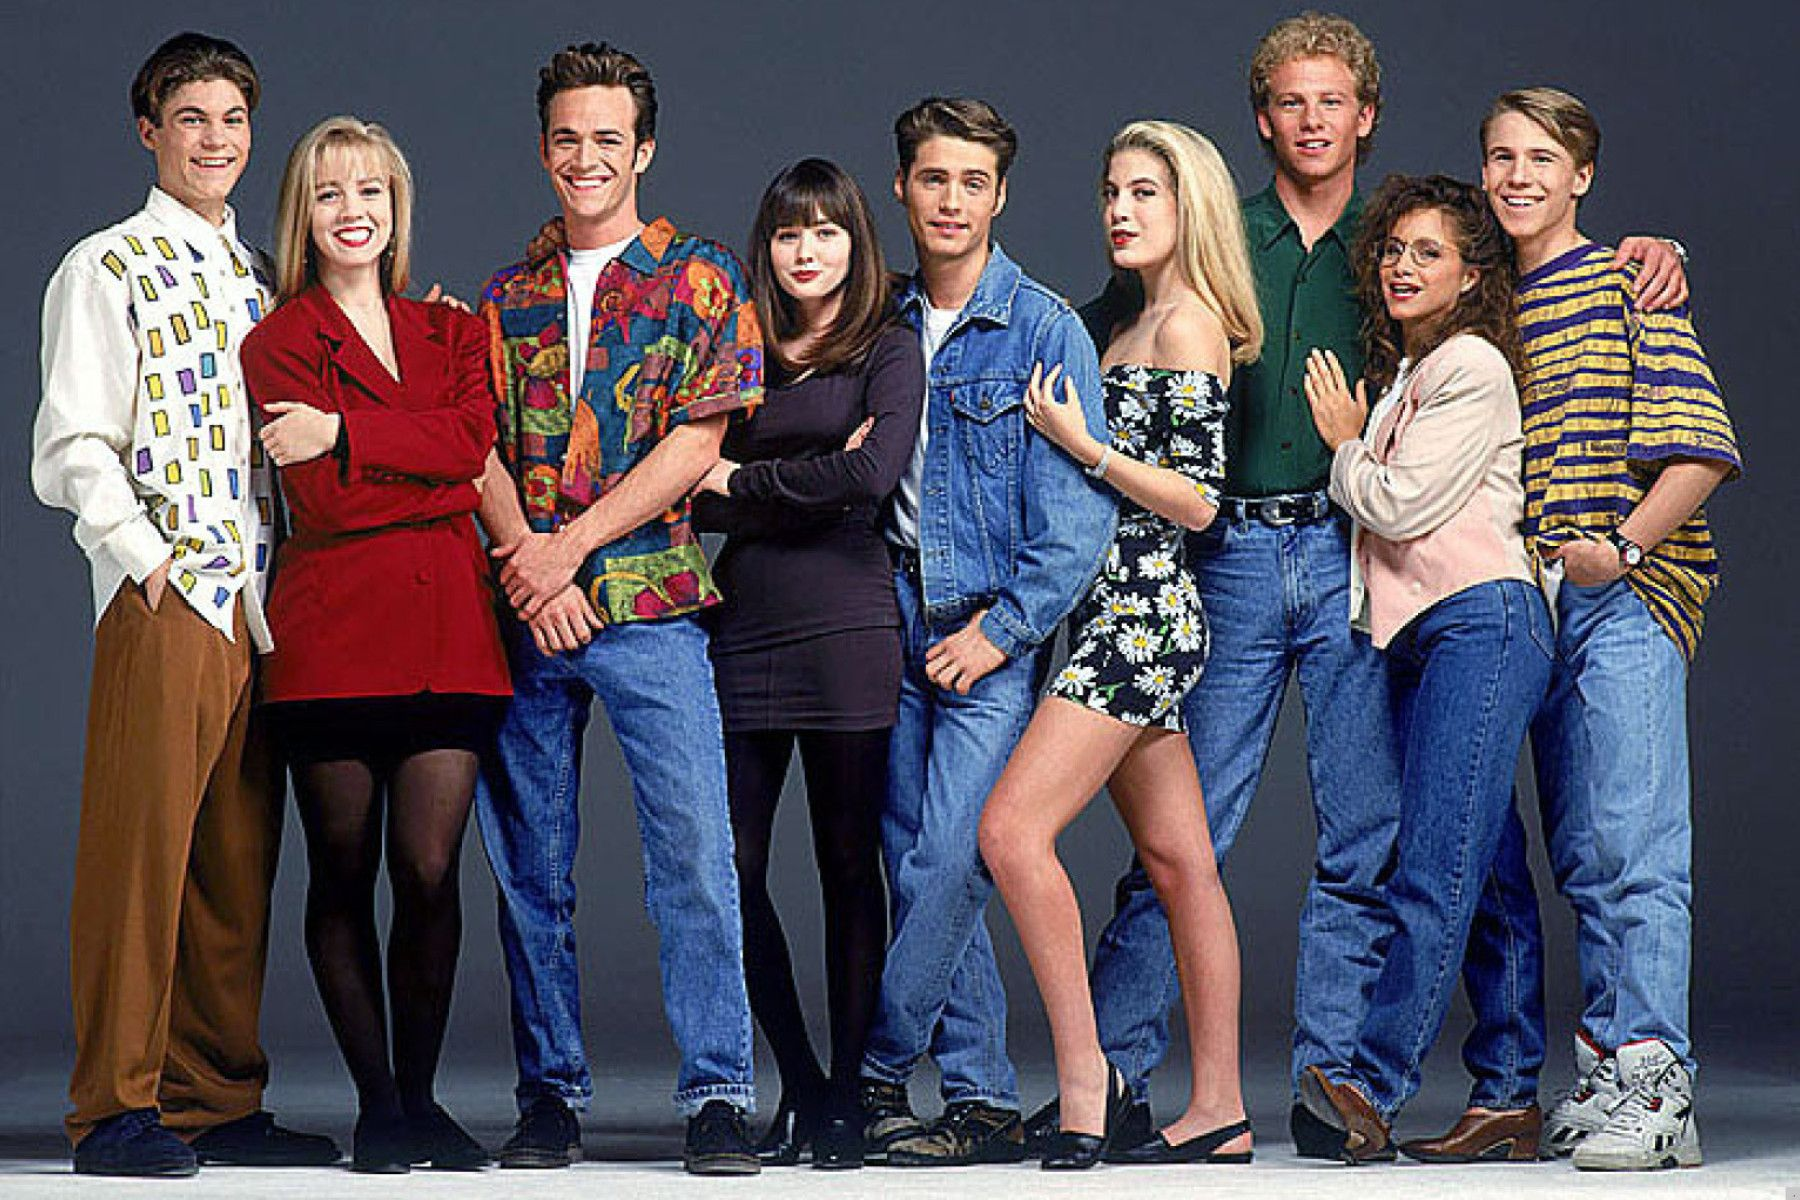 Lifetime Developing Unauthorized 'Beverly Hills 90210' Flick - Rolling Stone